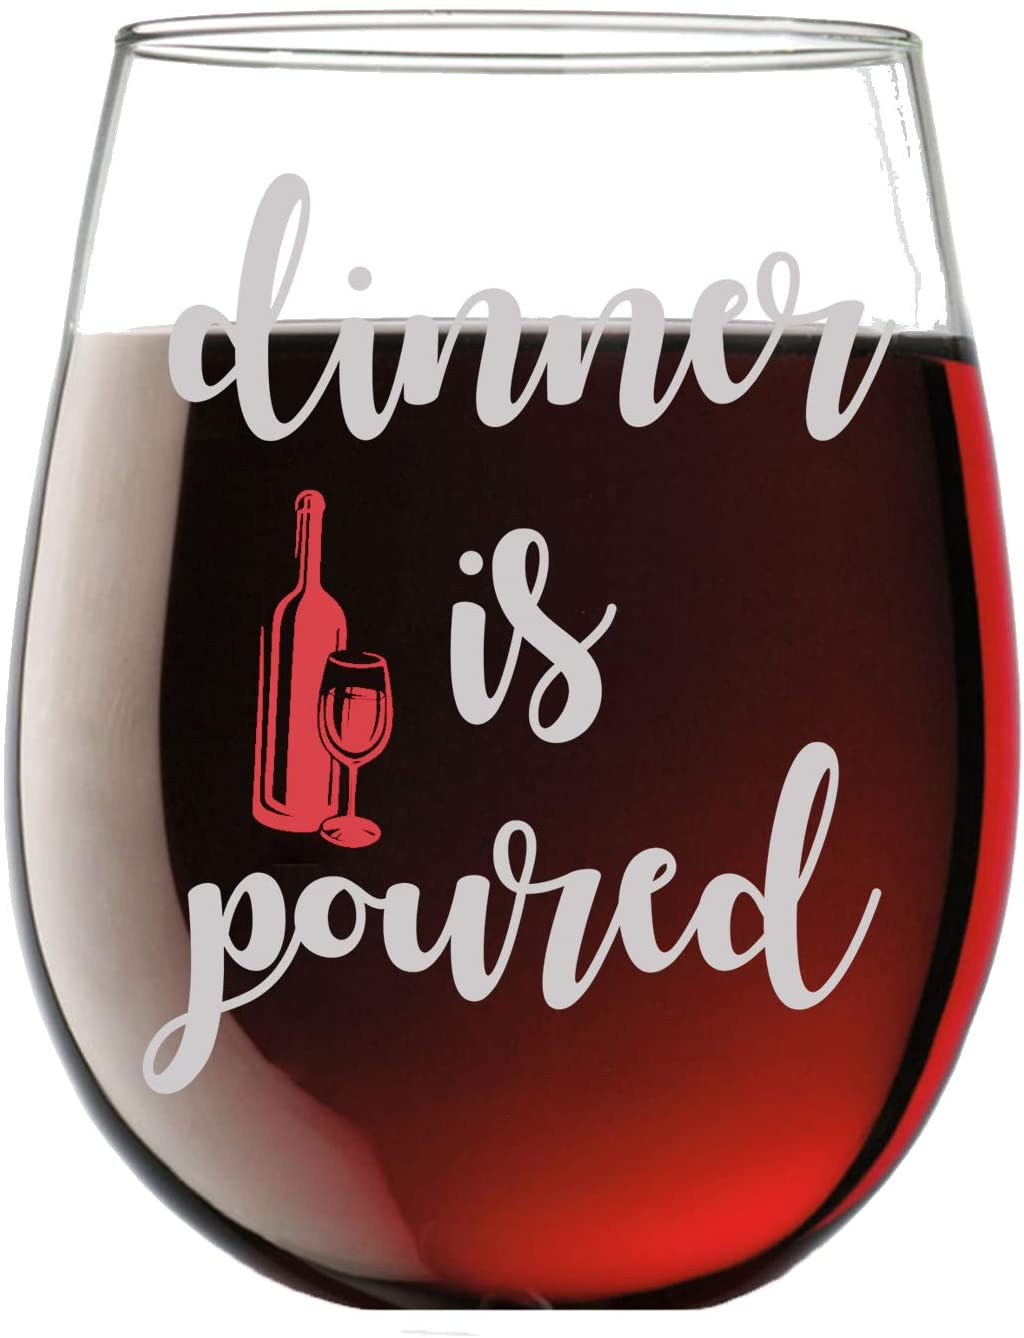 Dinner is Poured Funny 15oz Stemless Crystal Wine Glass - Fun Wine Glasses with Sayings Gifts for Women